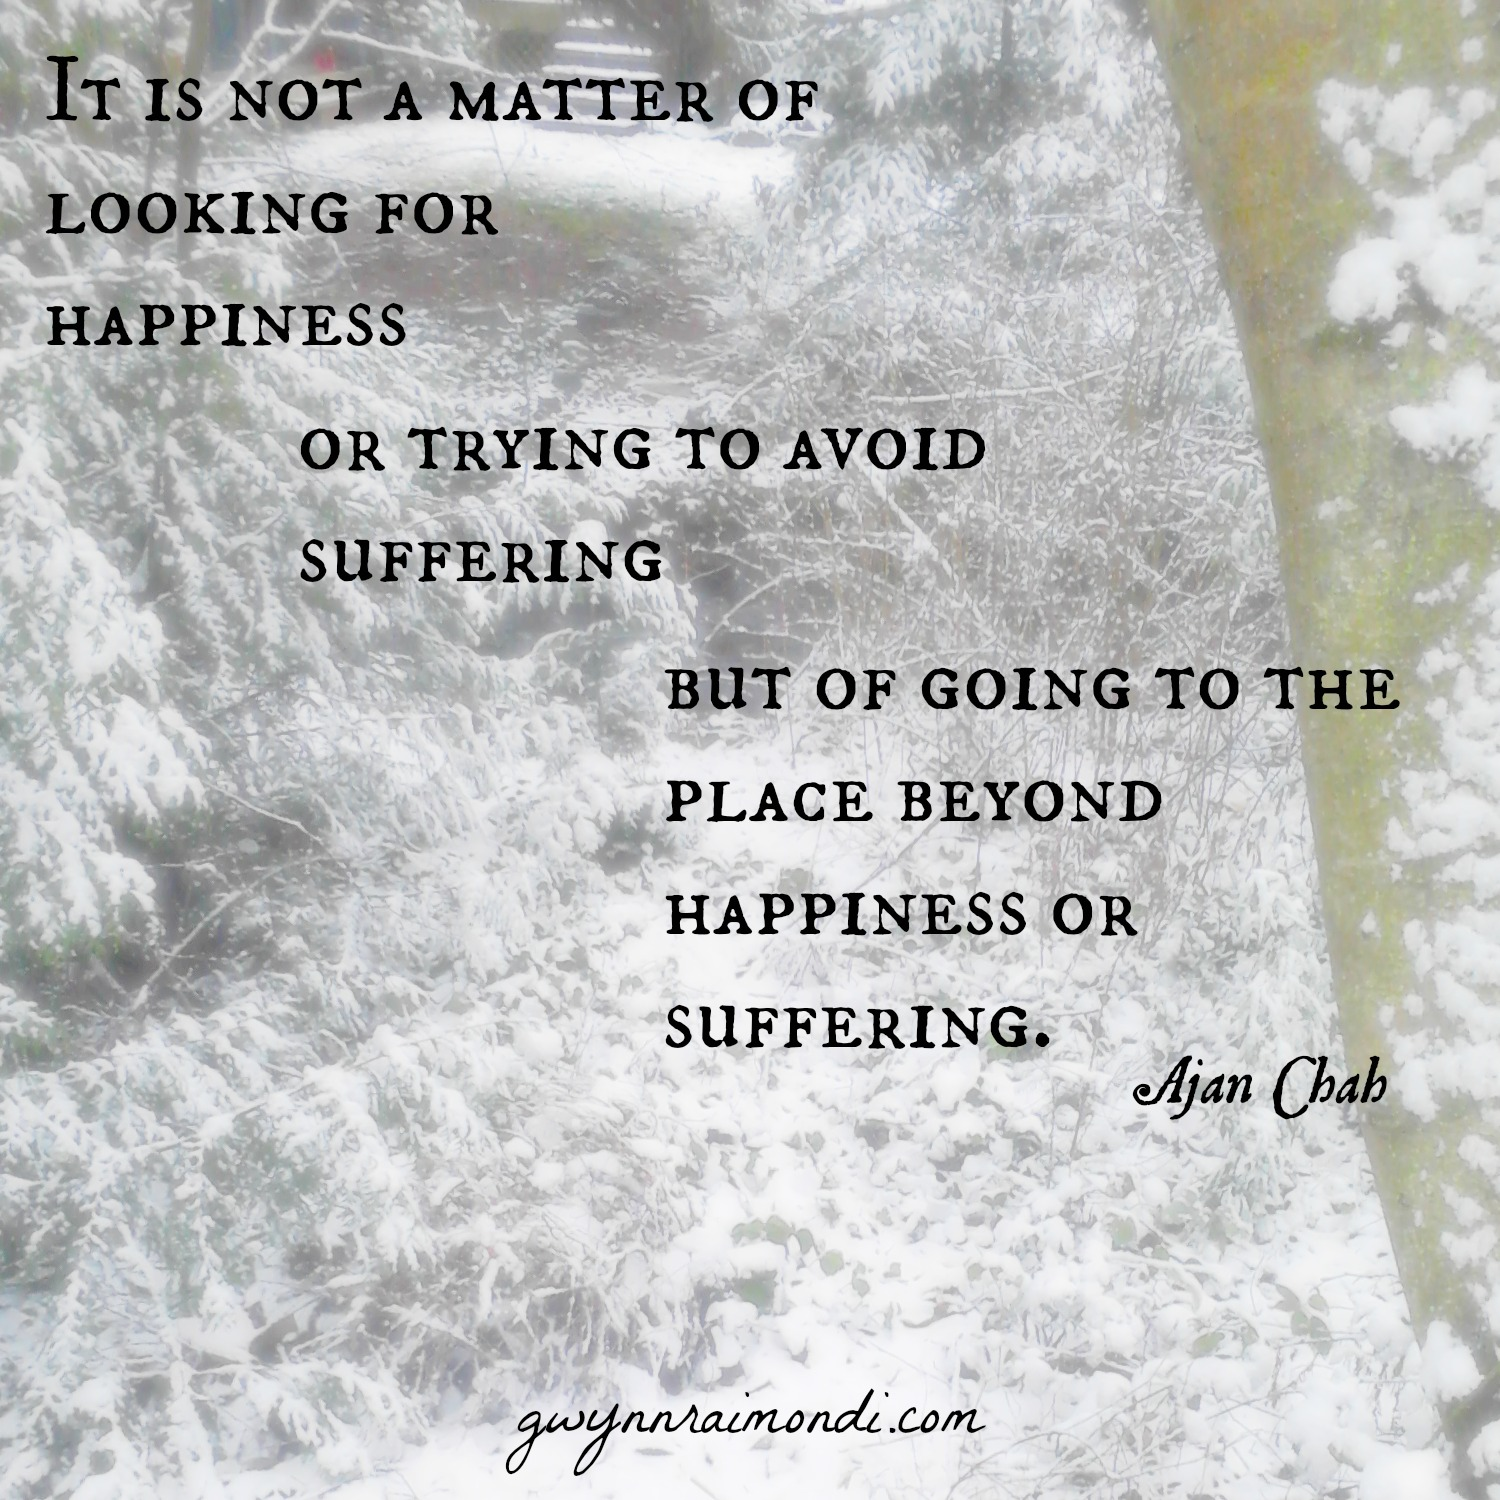 beyond happiness or suffering 29th